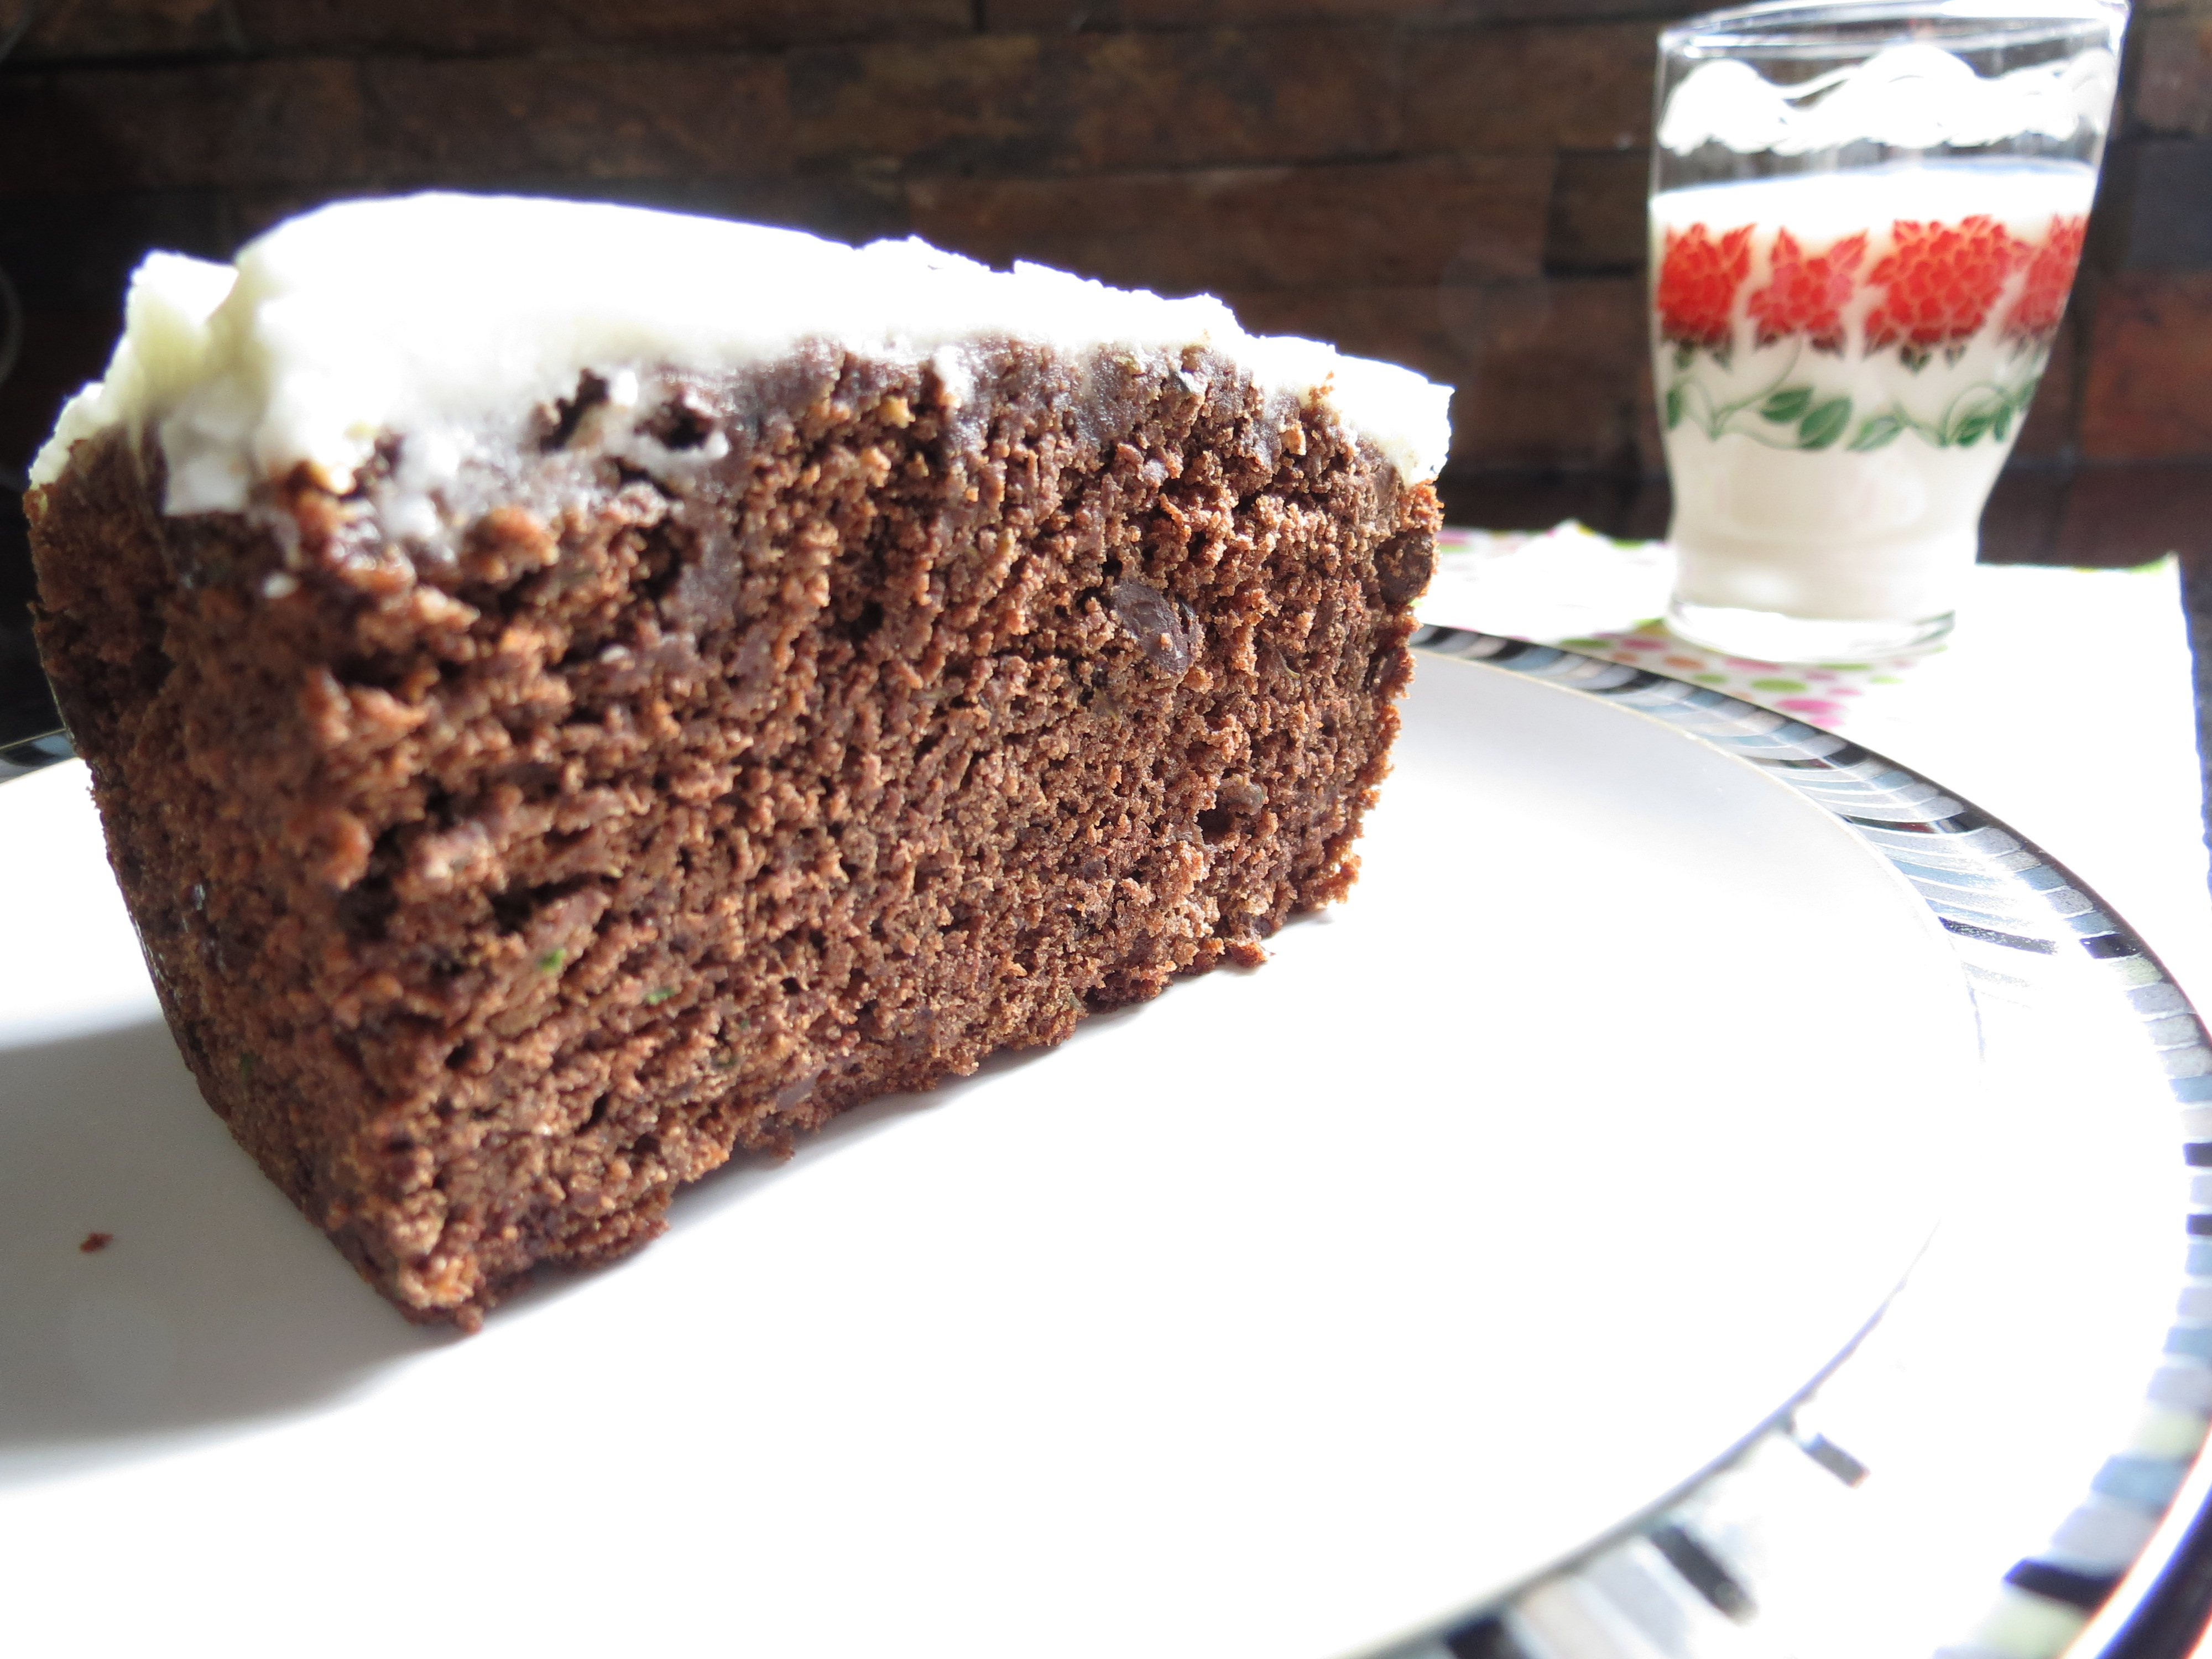 Chocolate Zucchini Cake with Lemon Cream Cheese Frosting - The Lit ...